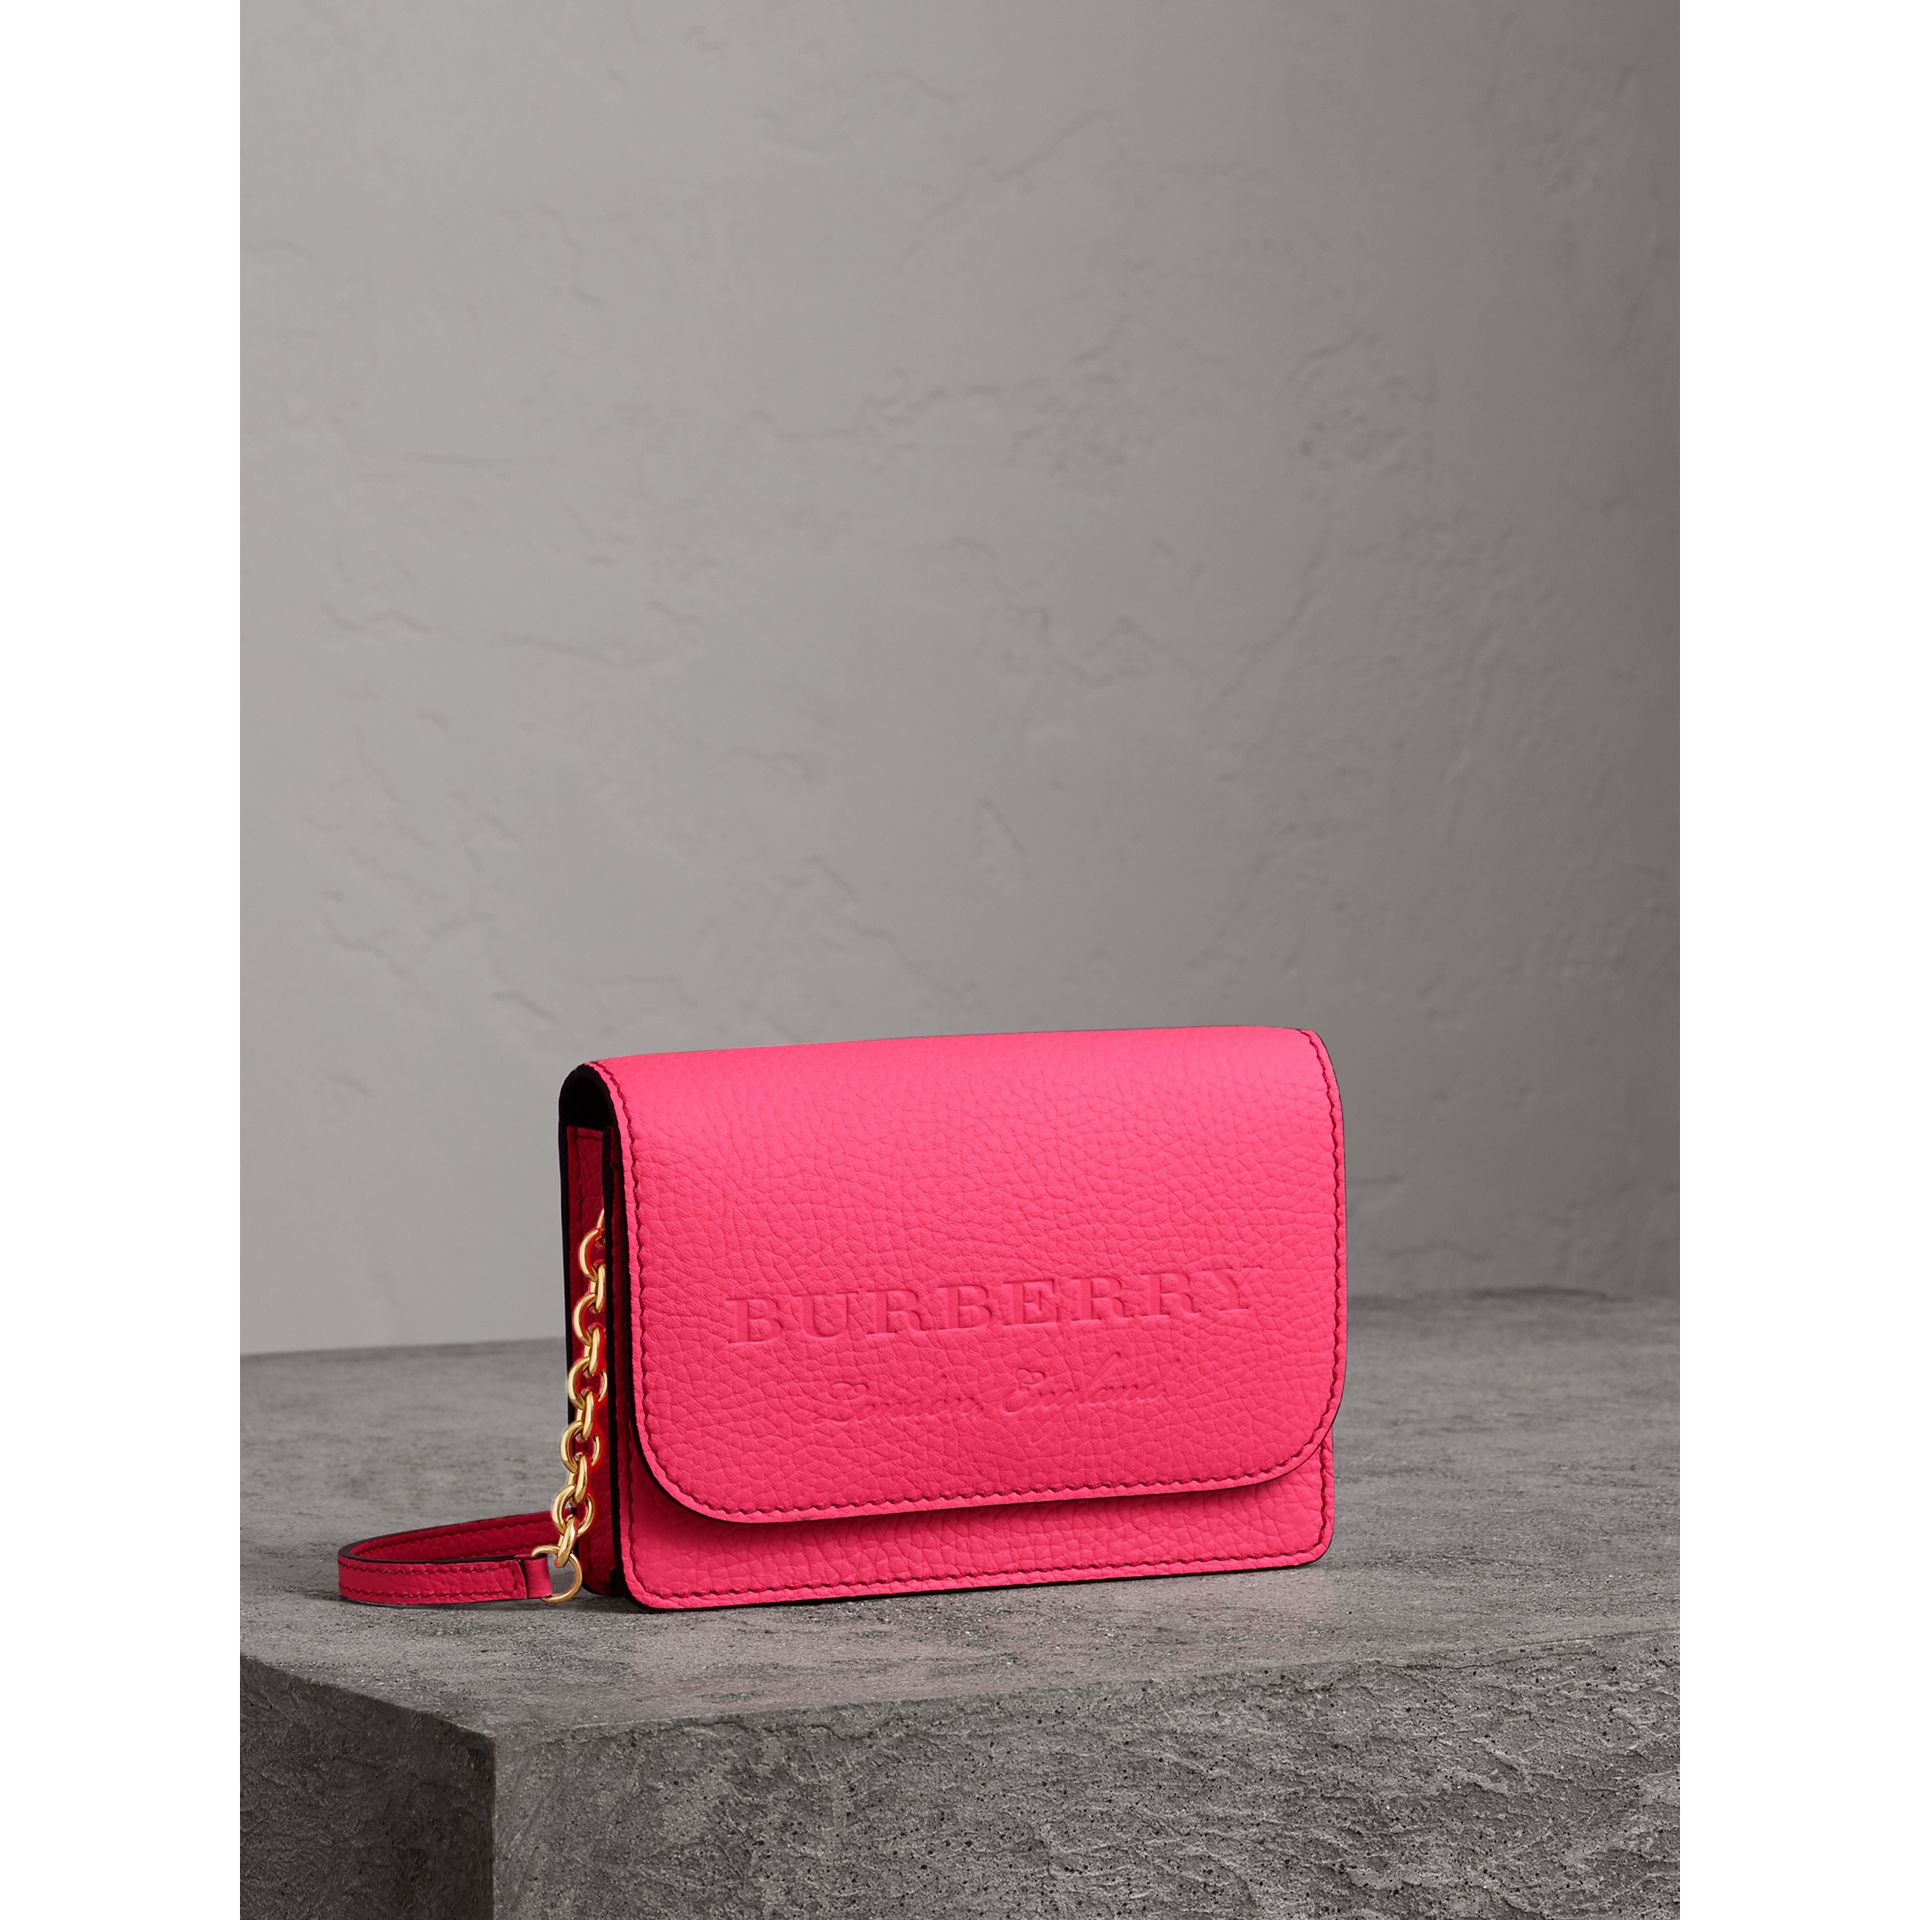 Embossed Leather Wallet with Detachable Strap in Bright Pink - Women | Burberry Hong Kong - gallery image 6